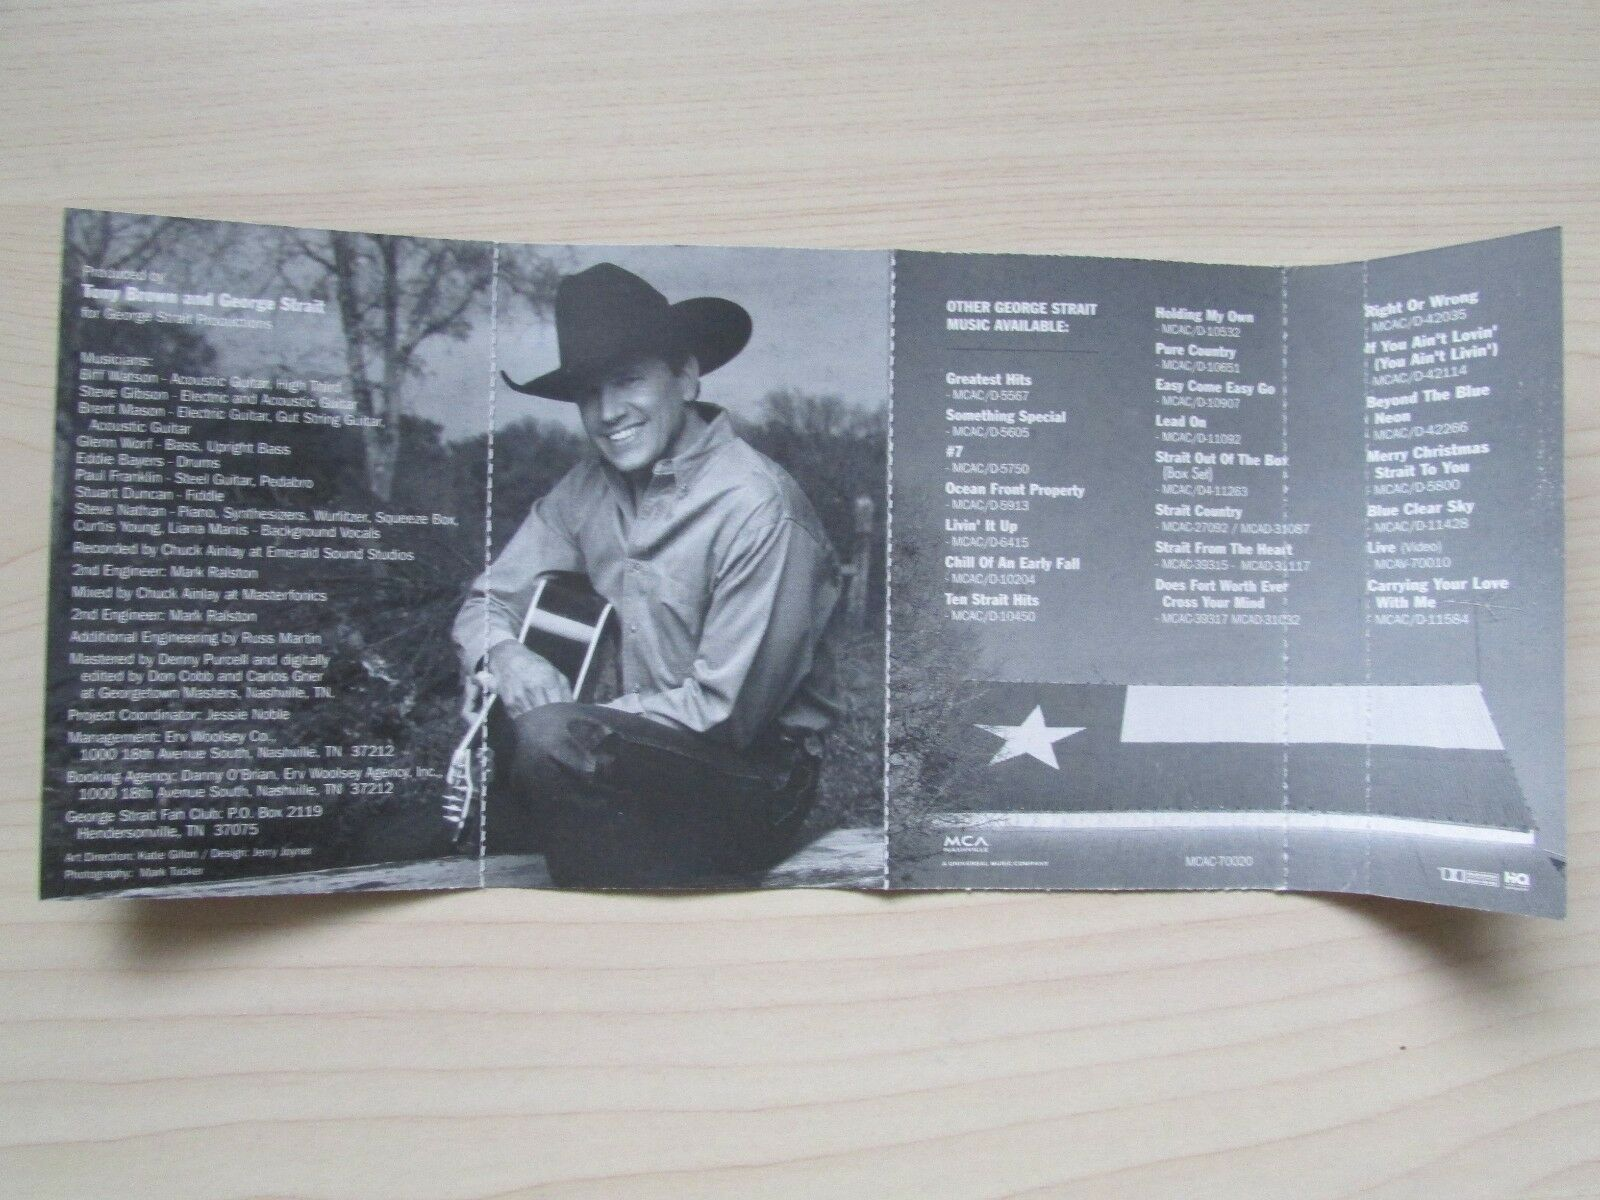 George Strait 'one Step at a Time' Cassette 1998 Mca. RARE USA Tape Tested. | eBay